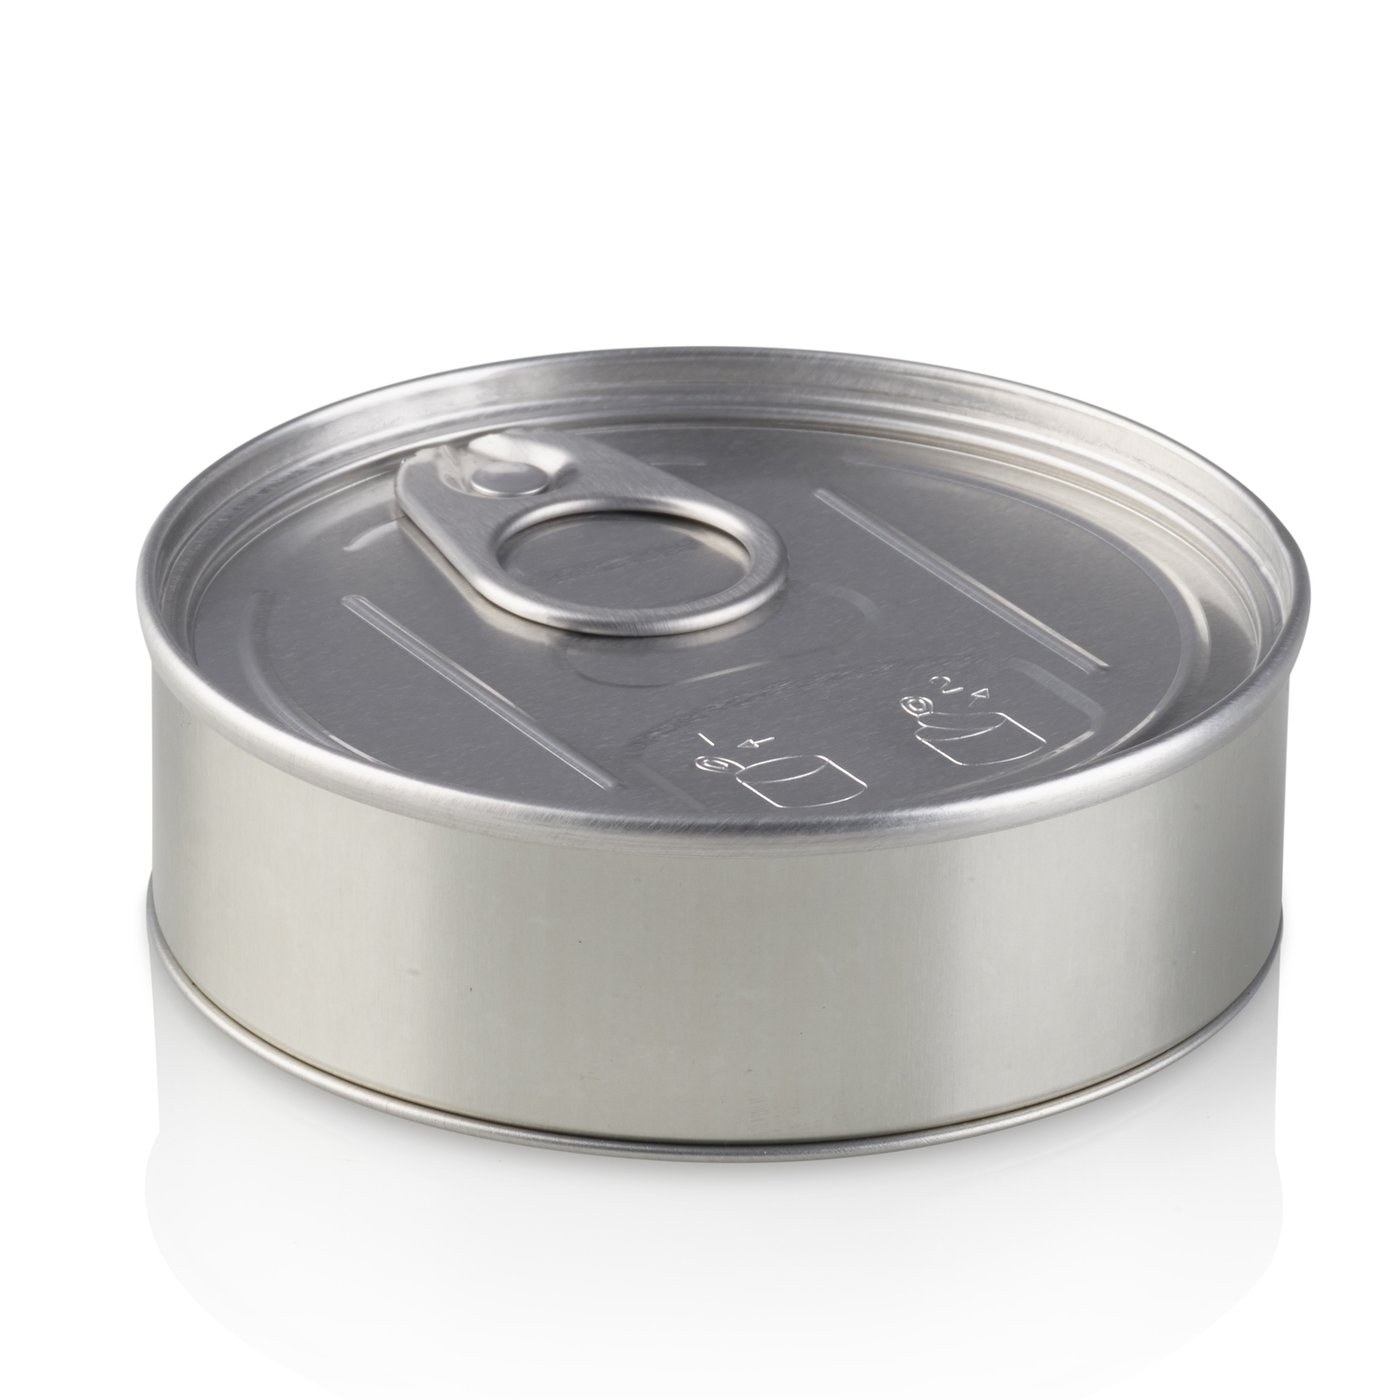 Press & Seal Tuna Tins